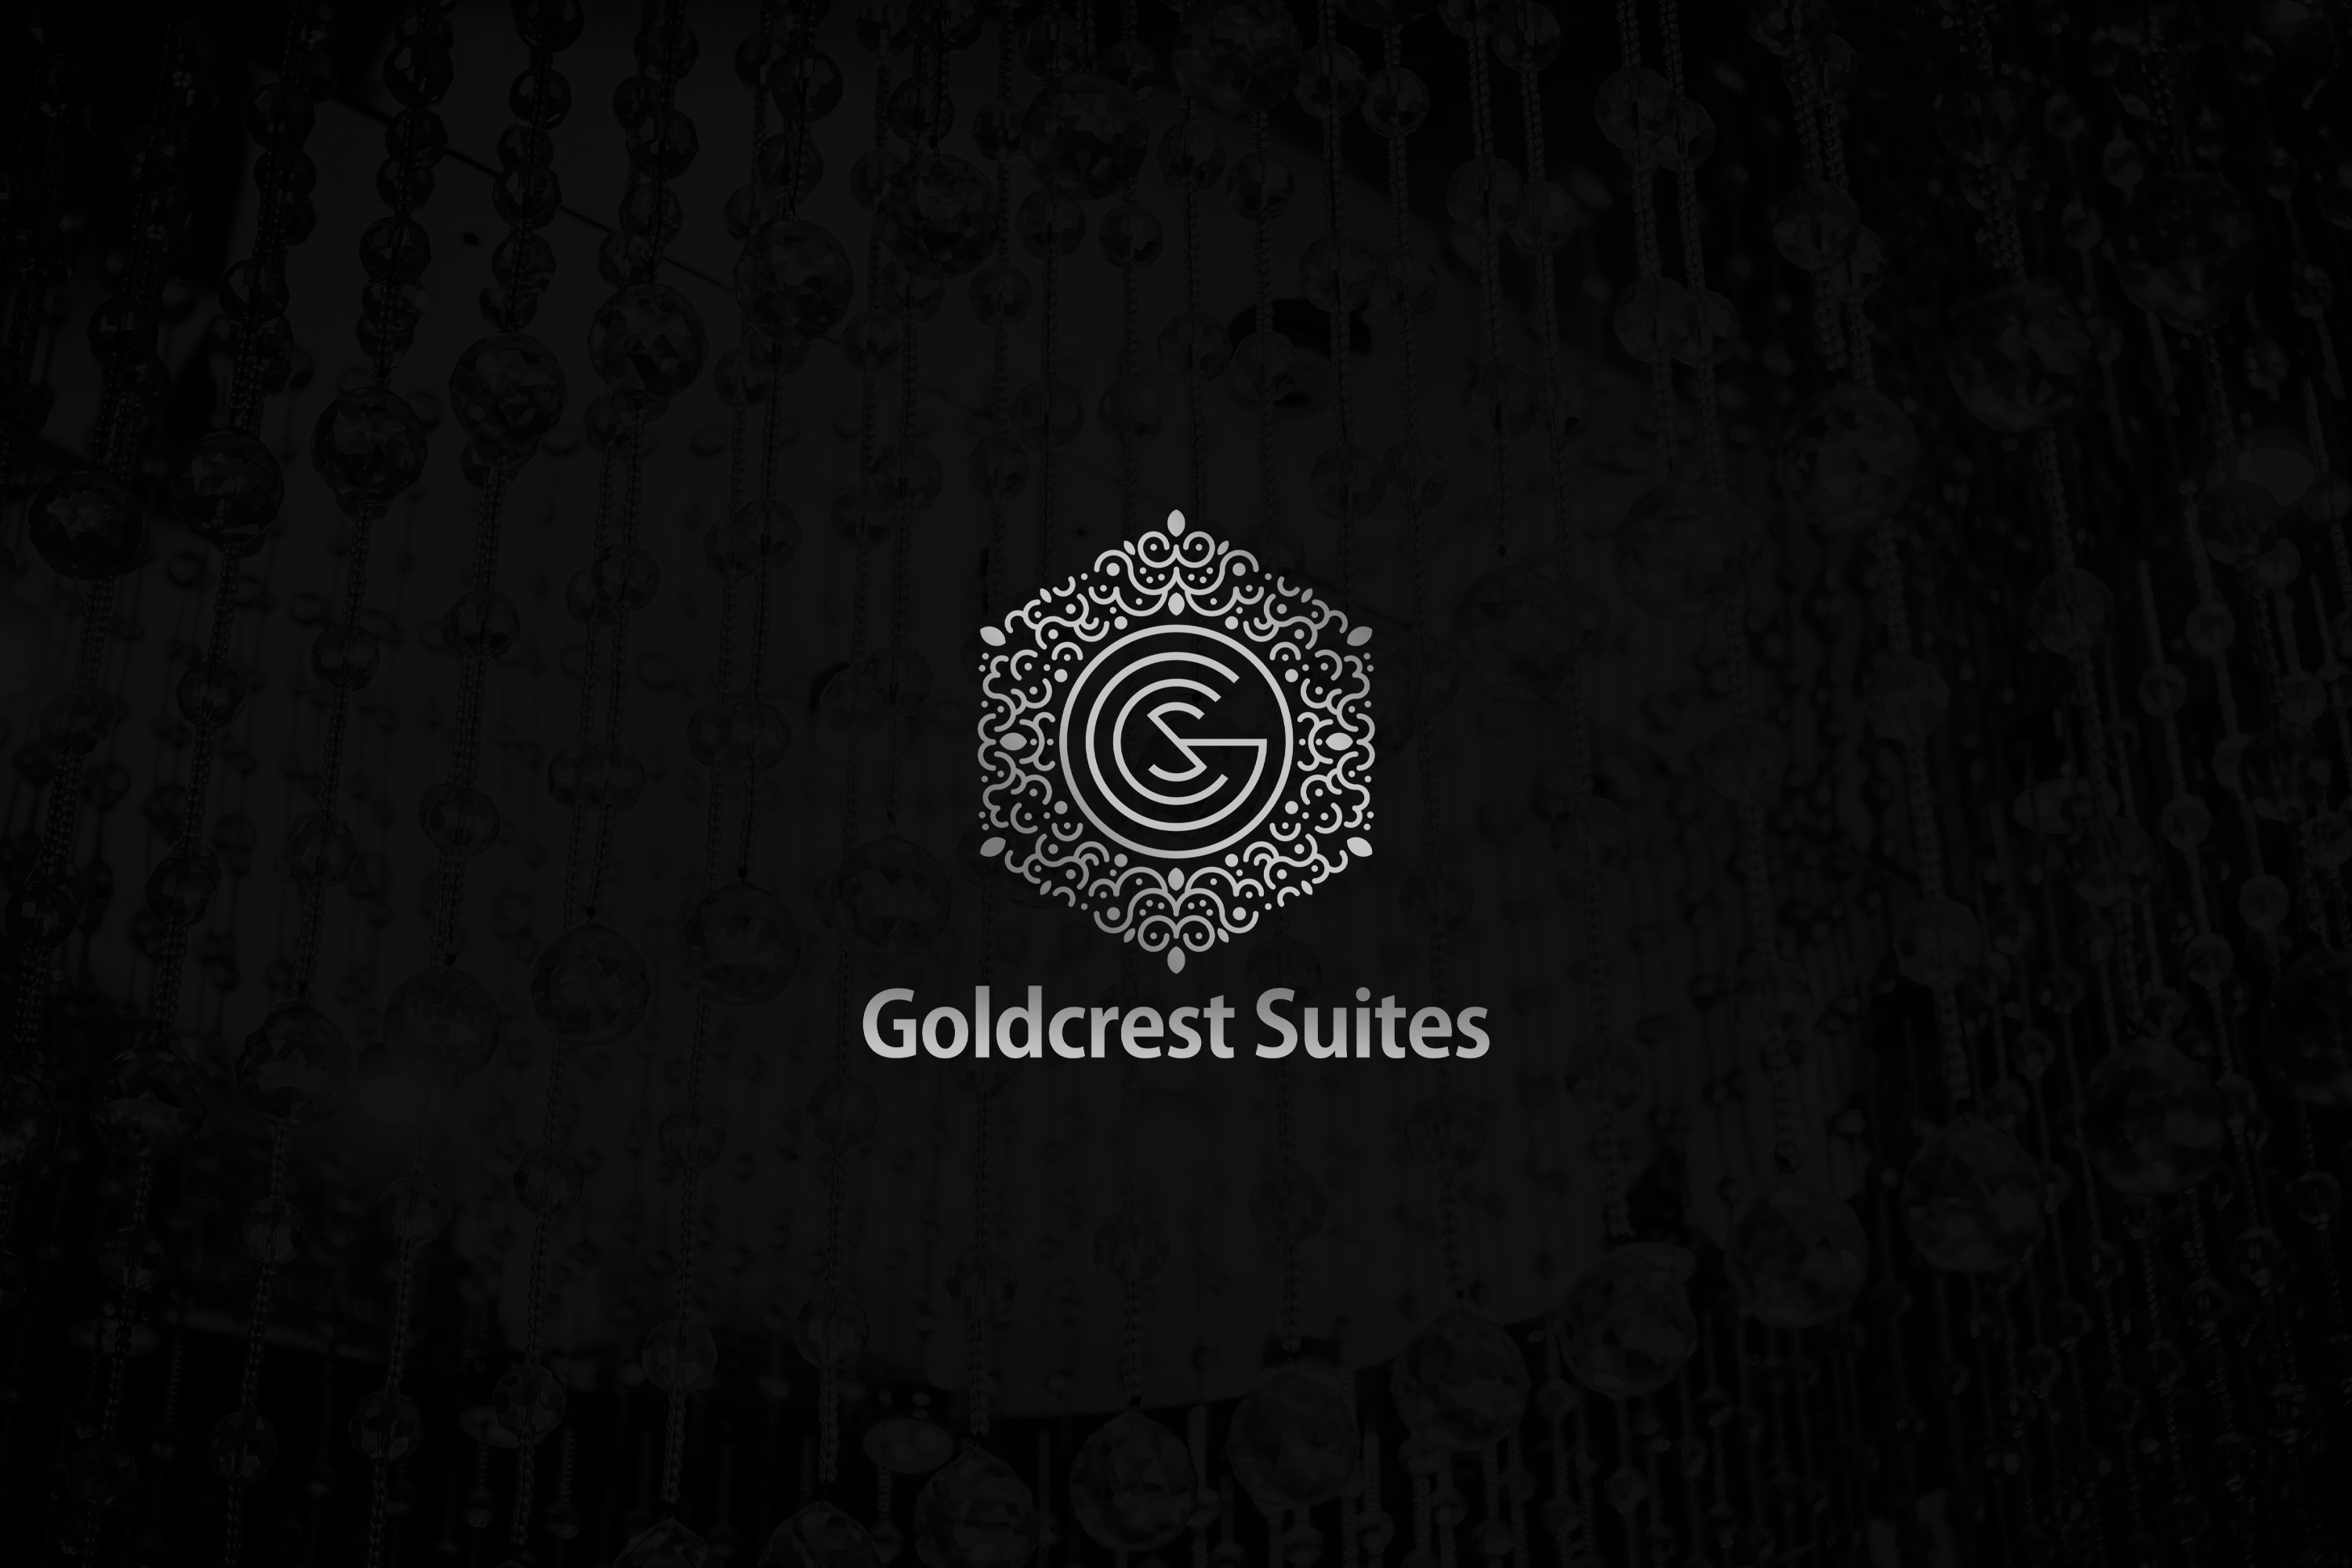 Goldcrest Suites